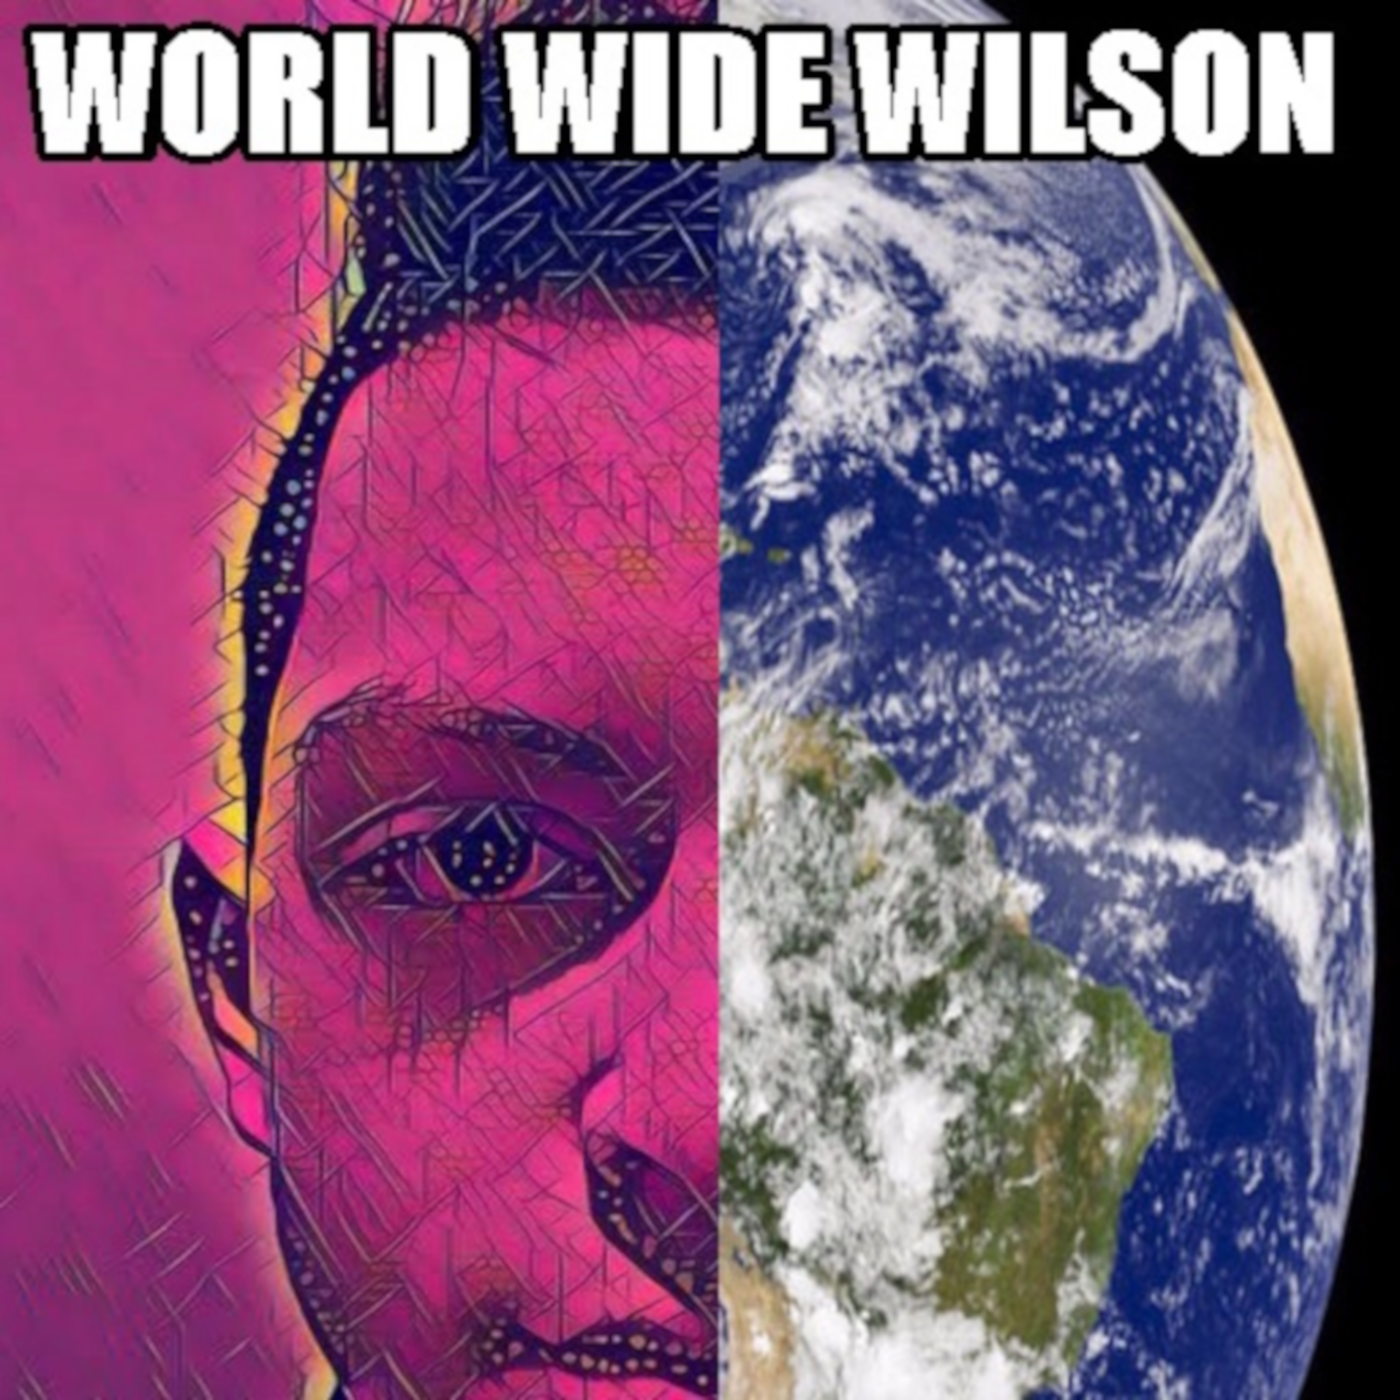 World Wide Wilson - Wilson Ludlow-21-11-2019